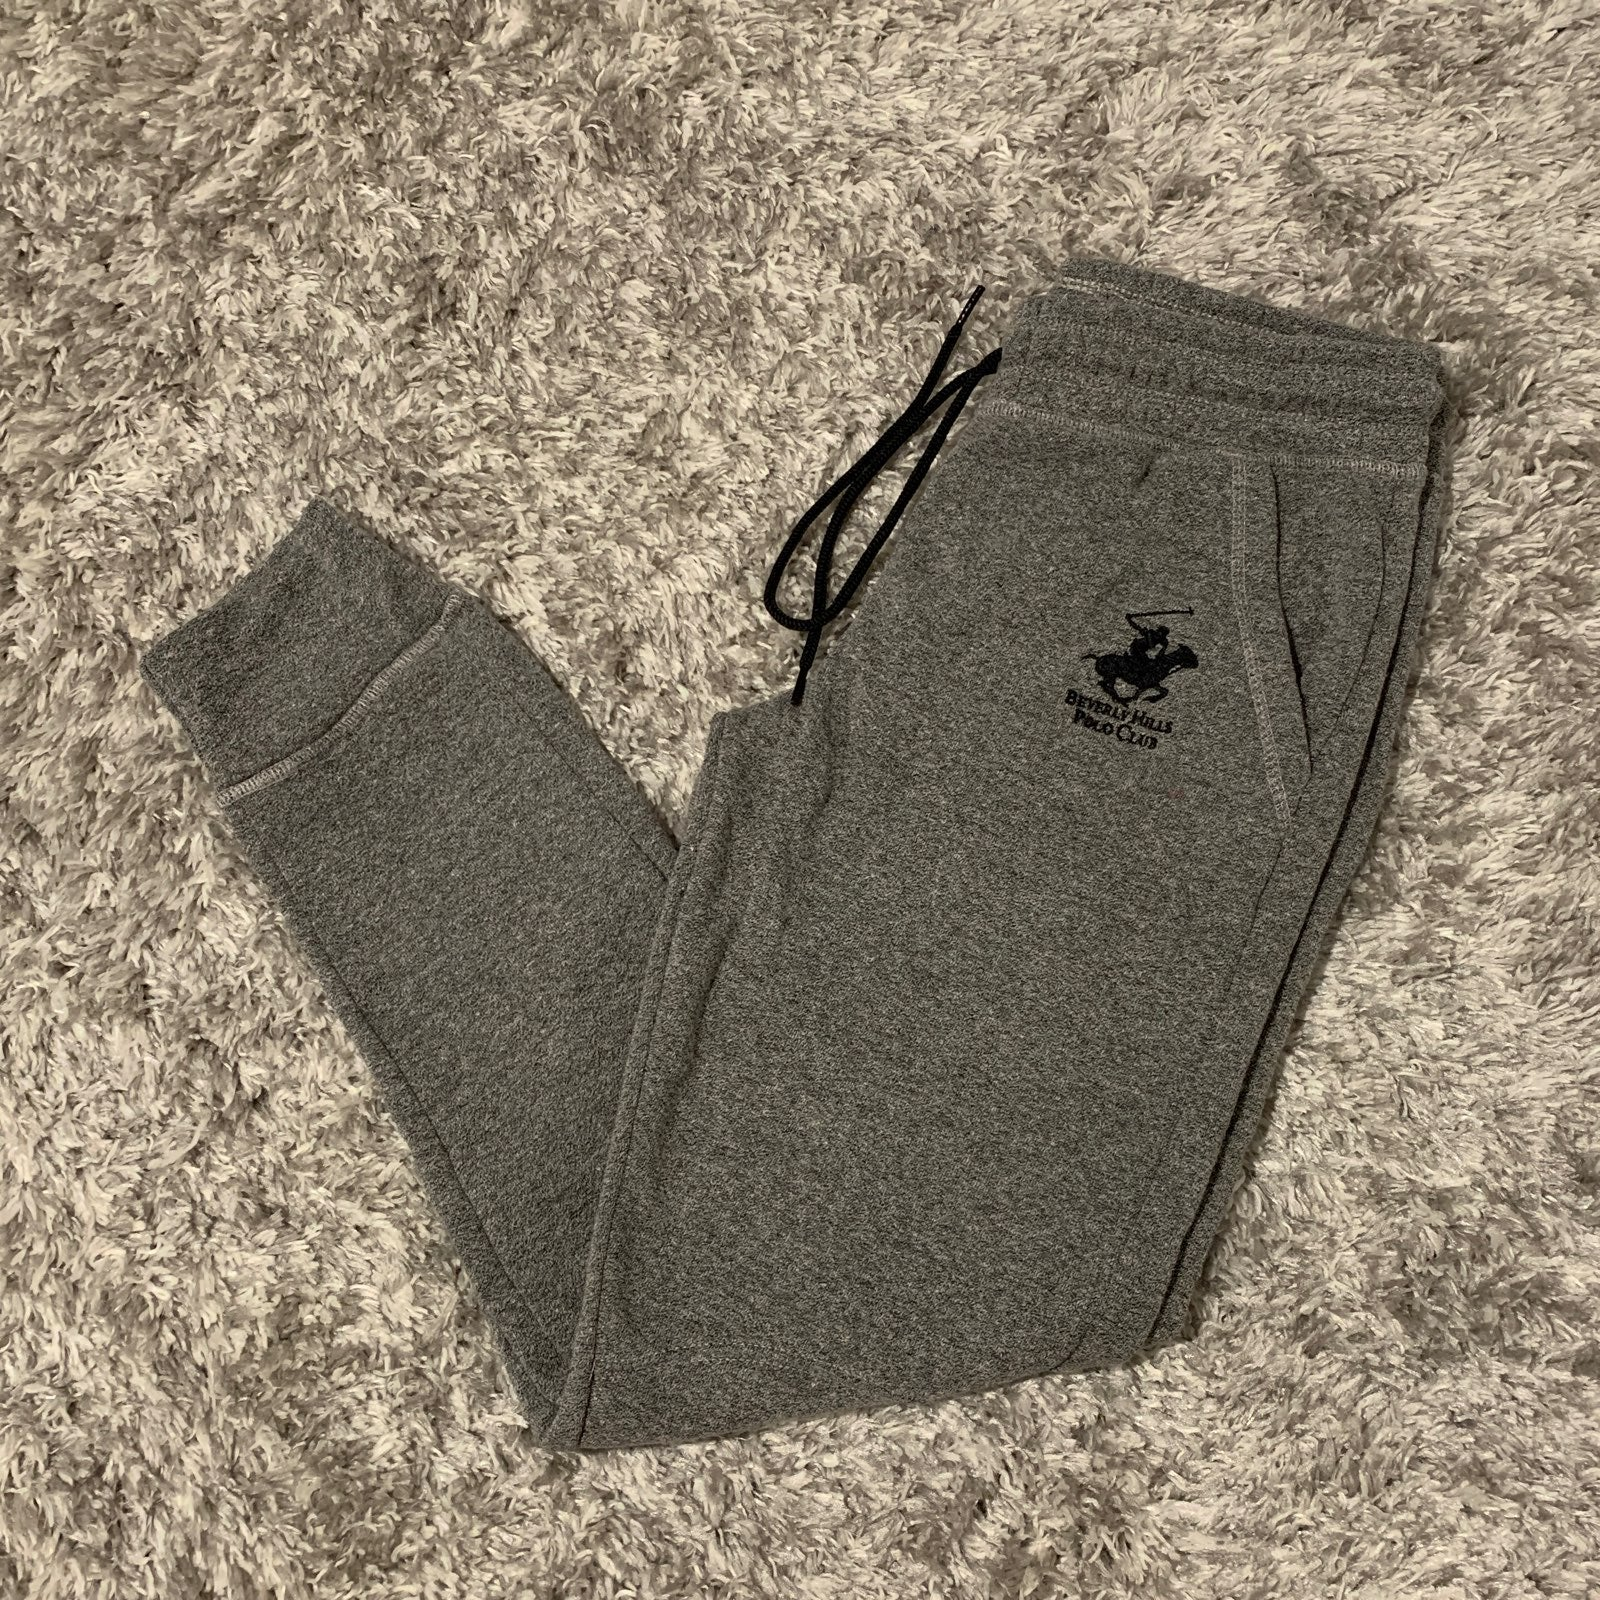 Beverly hills polo sweats